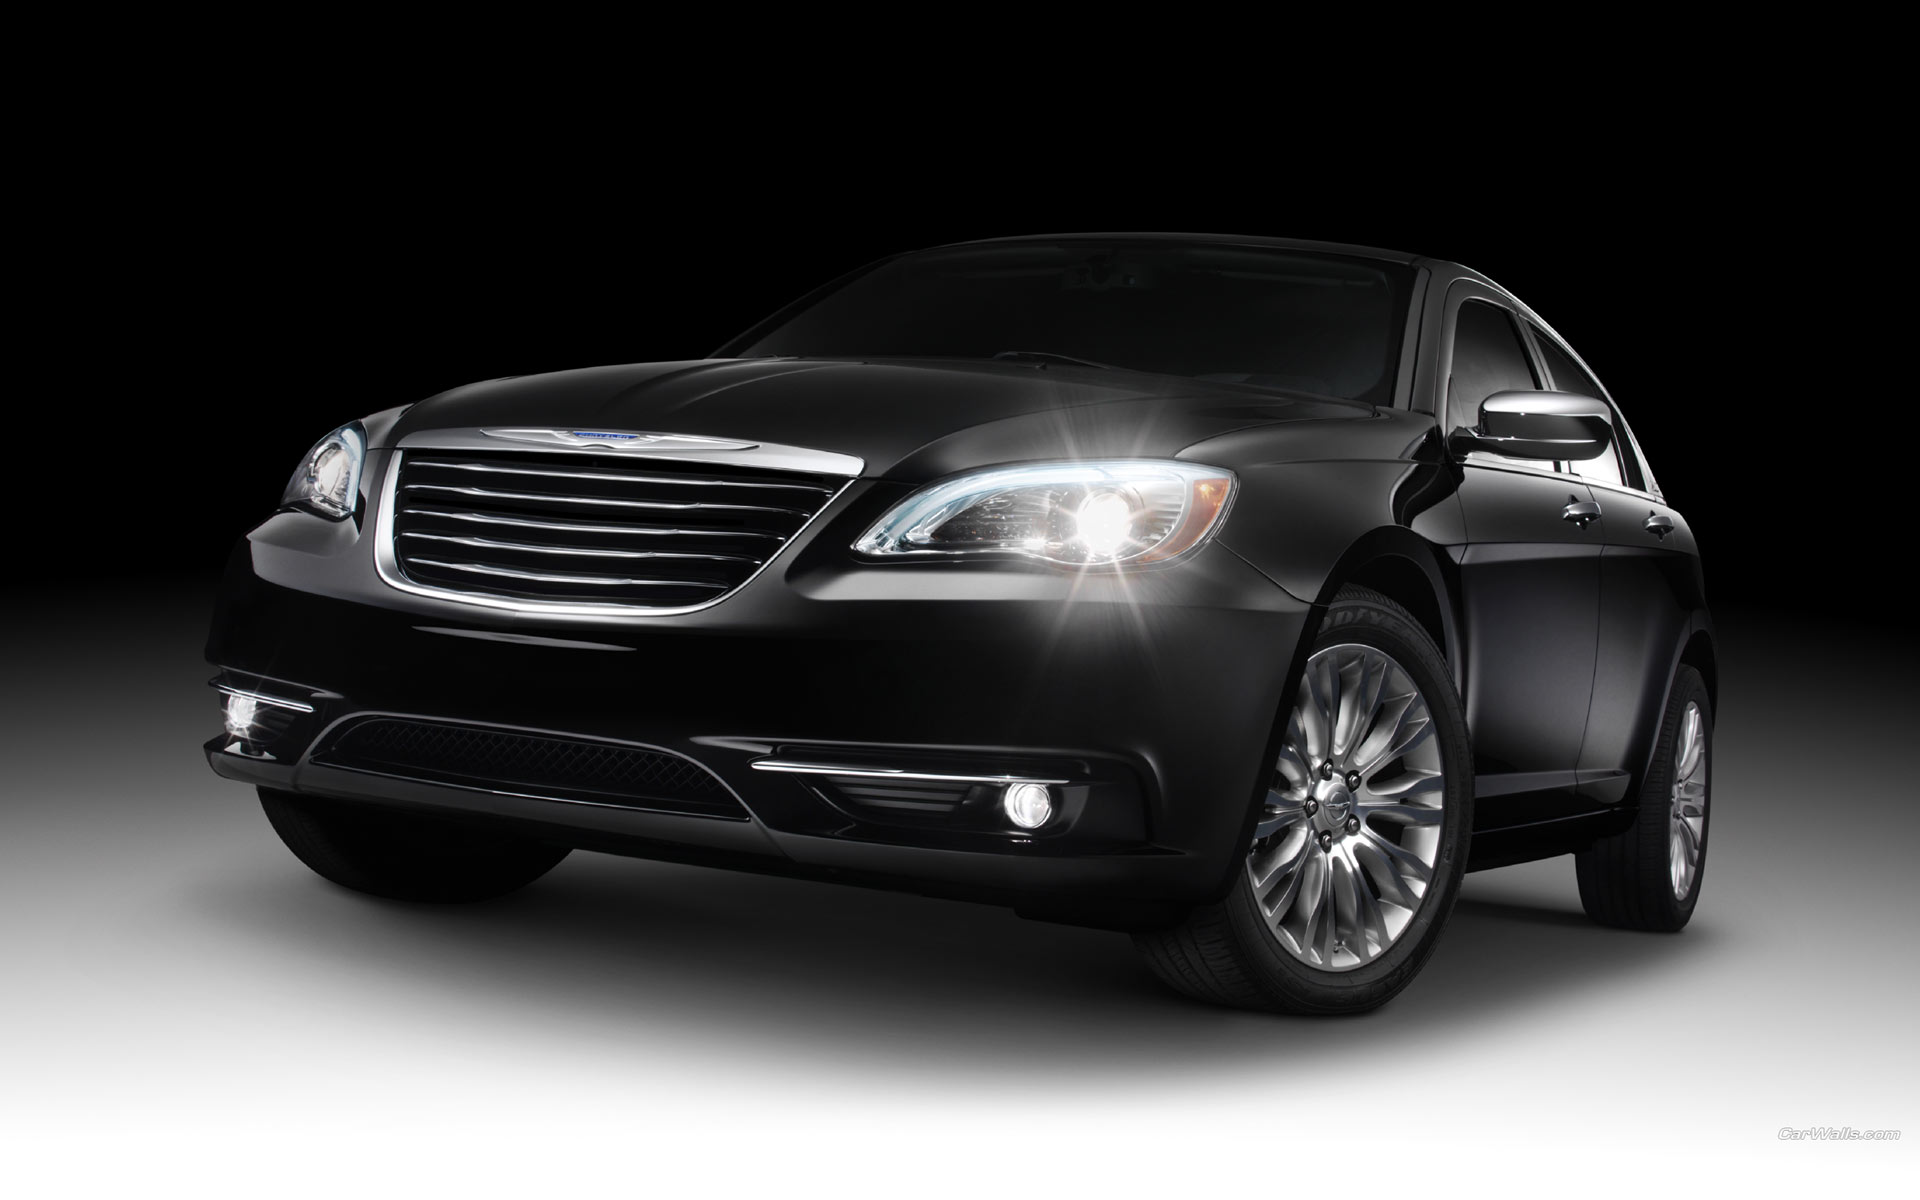 wallpaper anterior chrysler 200 wallpaper siguiente chrysler 200 1920x1200